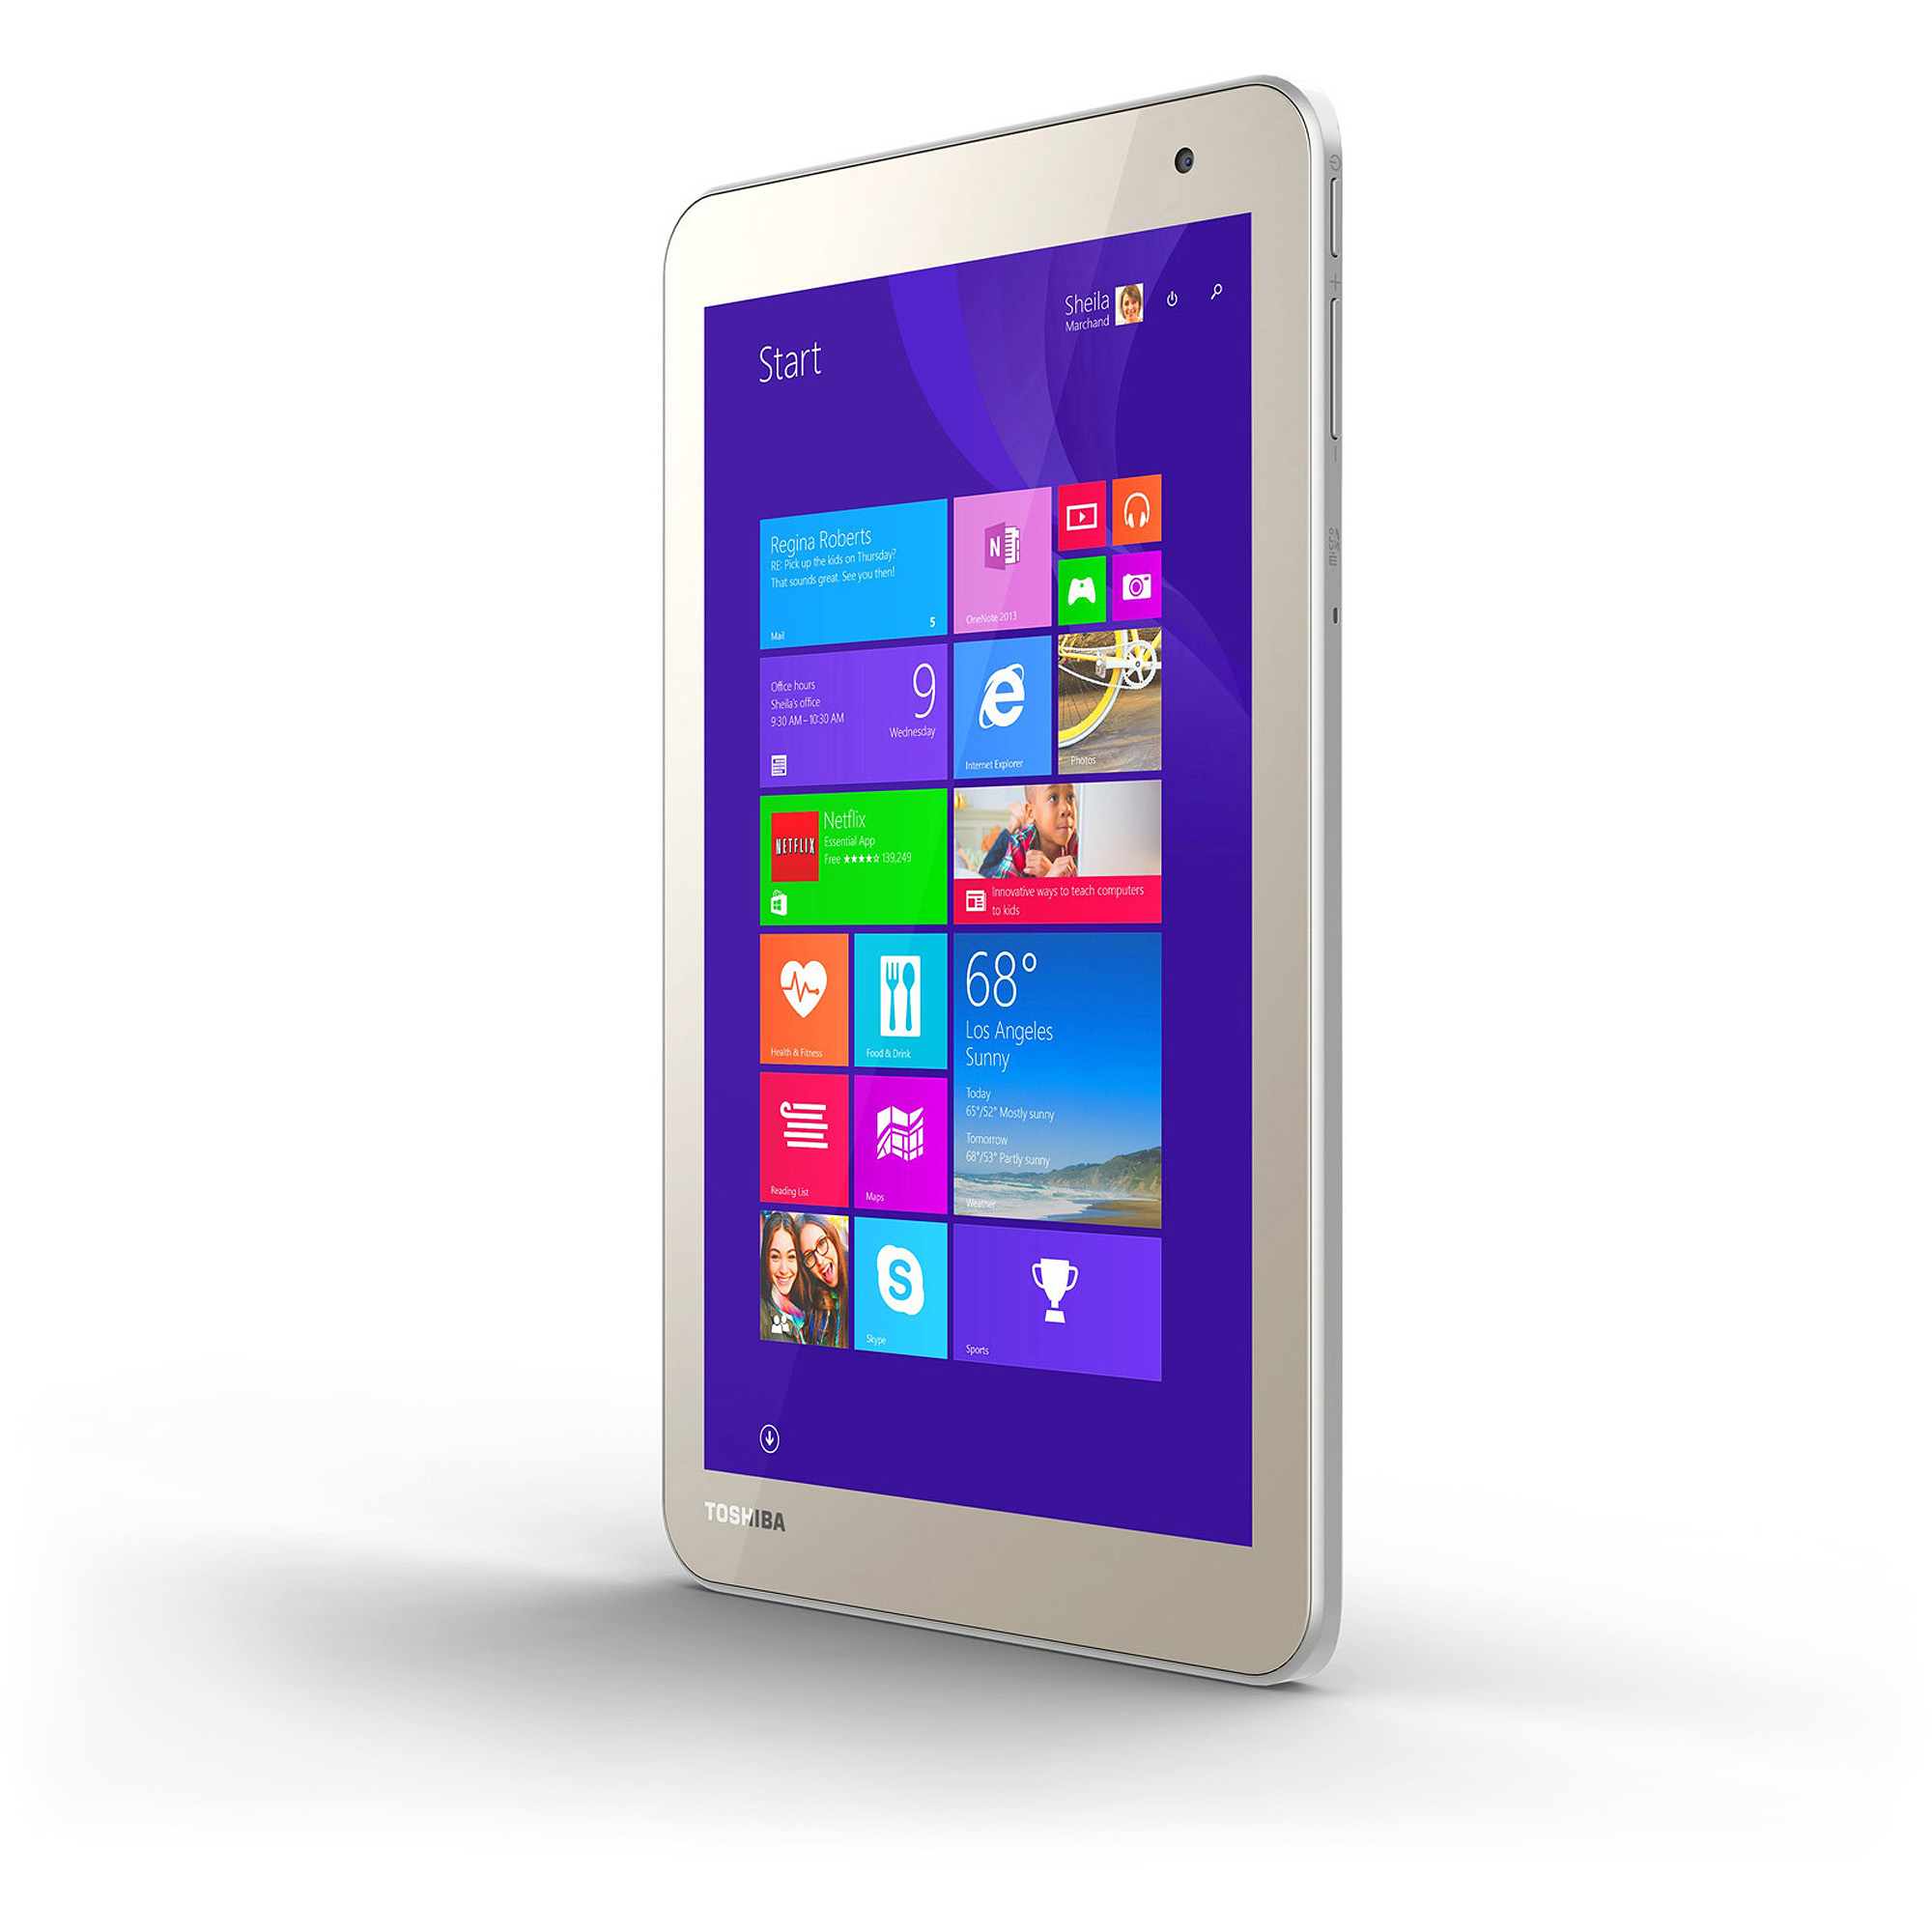 "Toshiba Encore 2 8"" Tablet 64GB Intel Atom Z3735F Quad-Core Processor Windows 8.1, Matte Satin Gold"